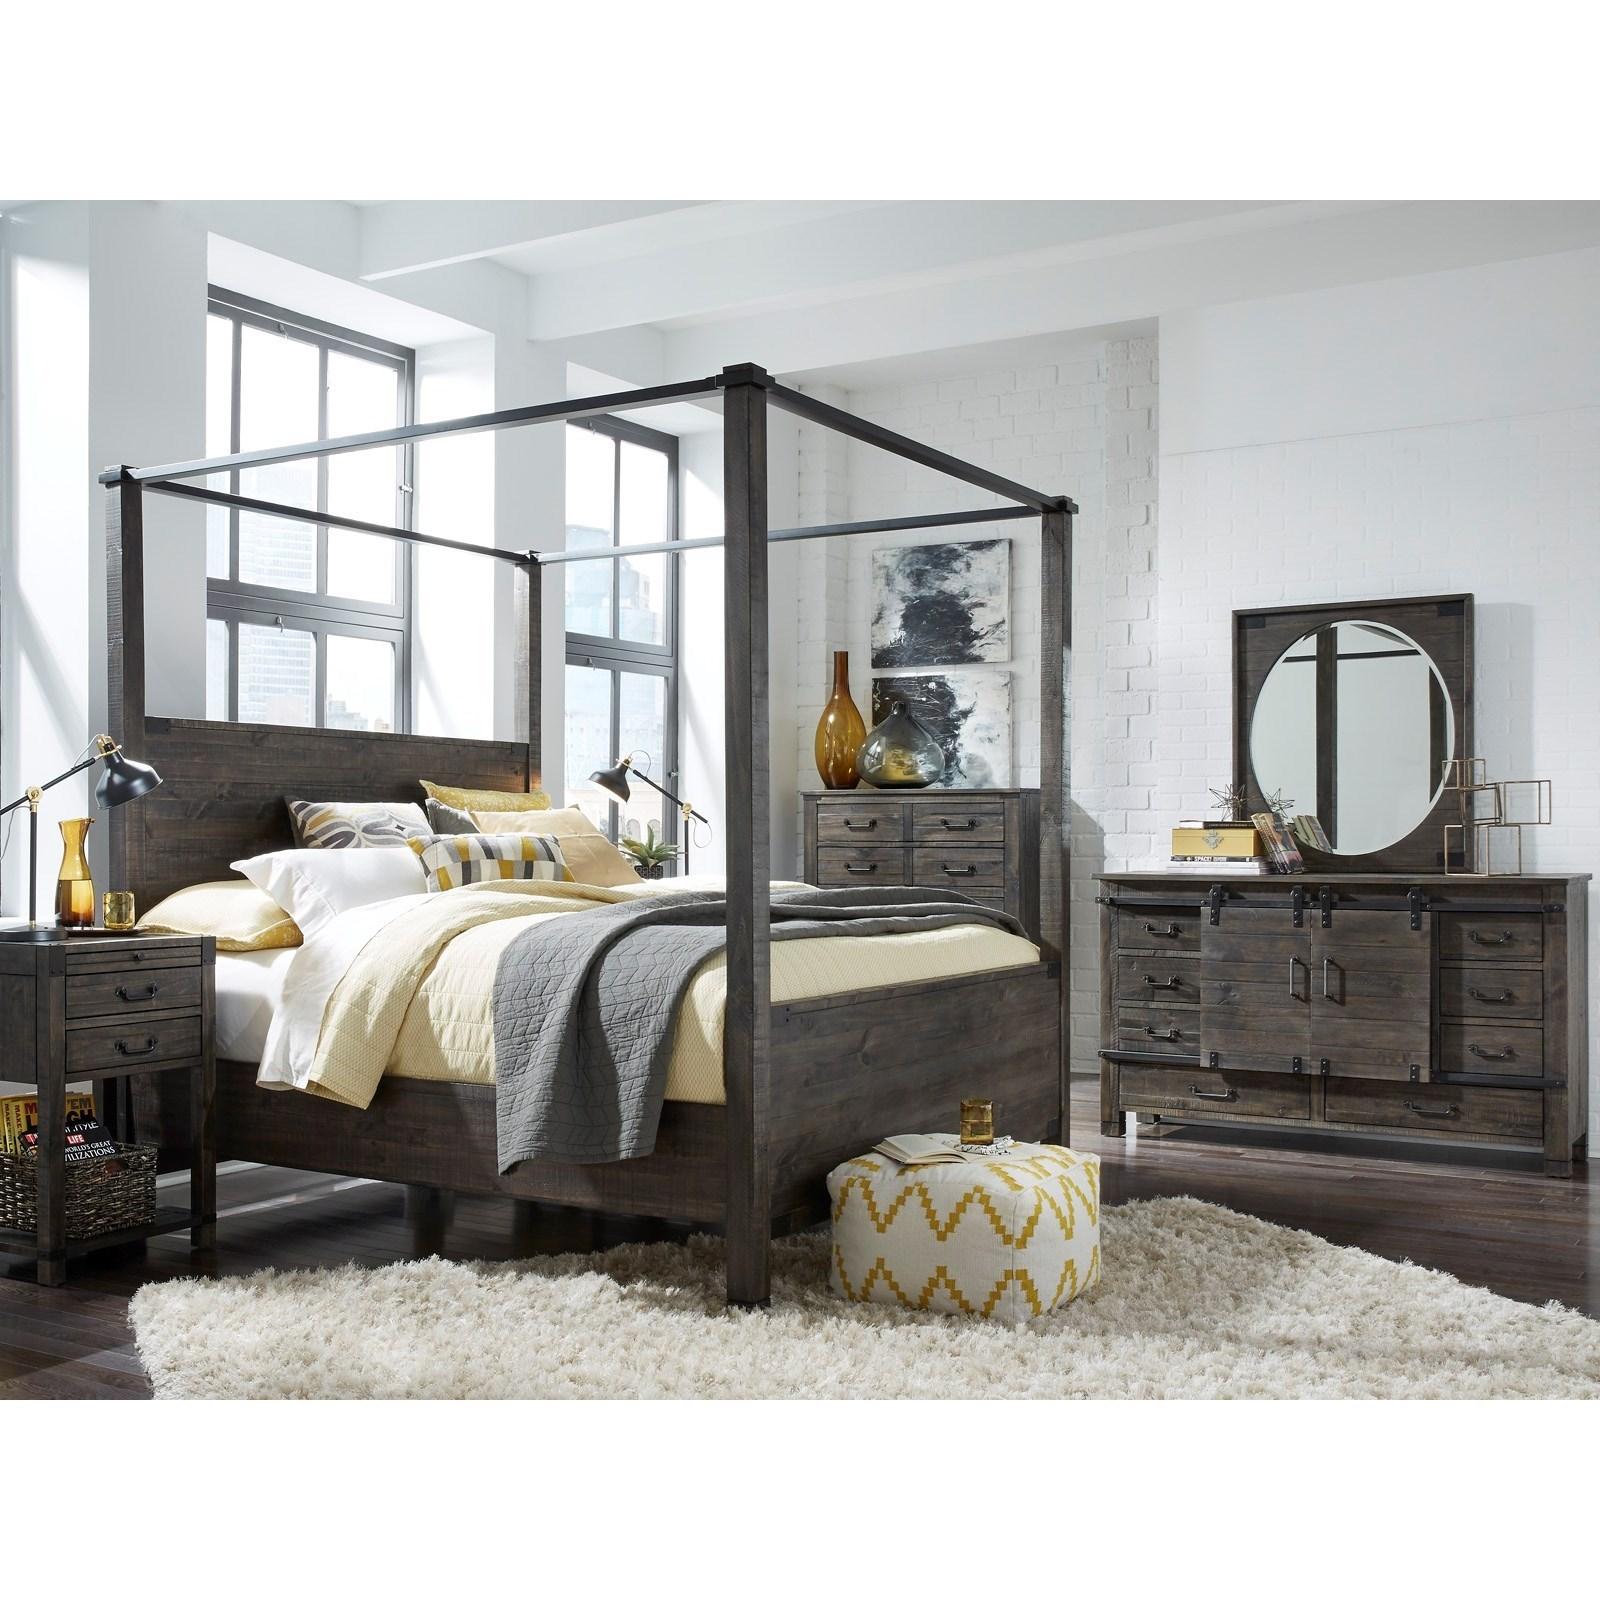 Abington King Bedroom Group by Magnussen Home at Stoney Creek Furniture